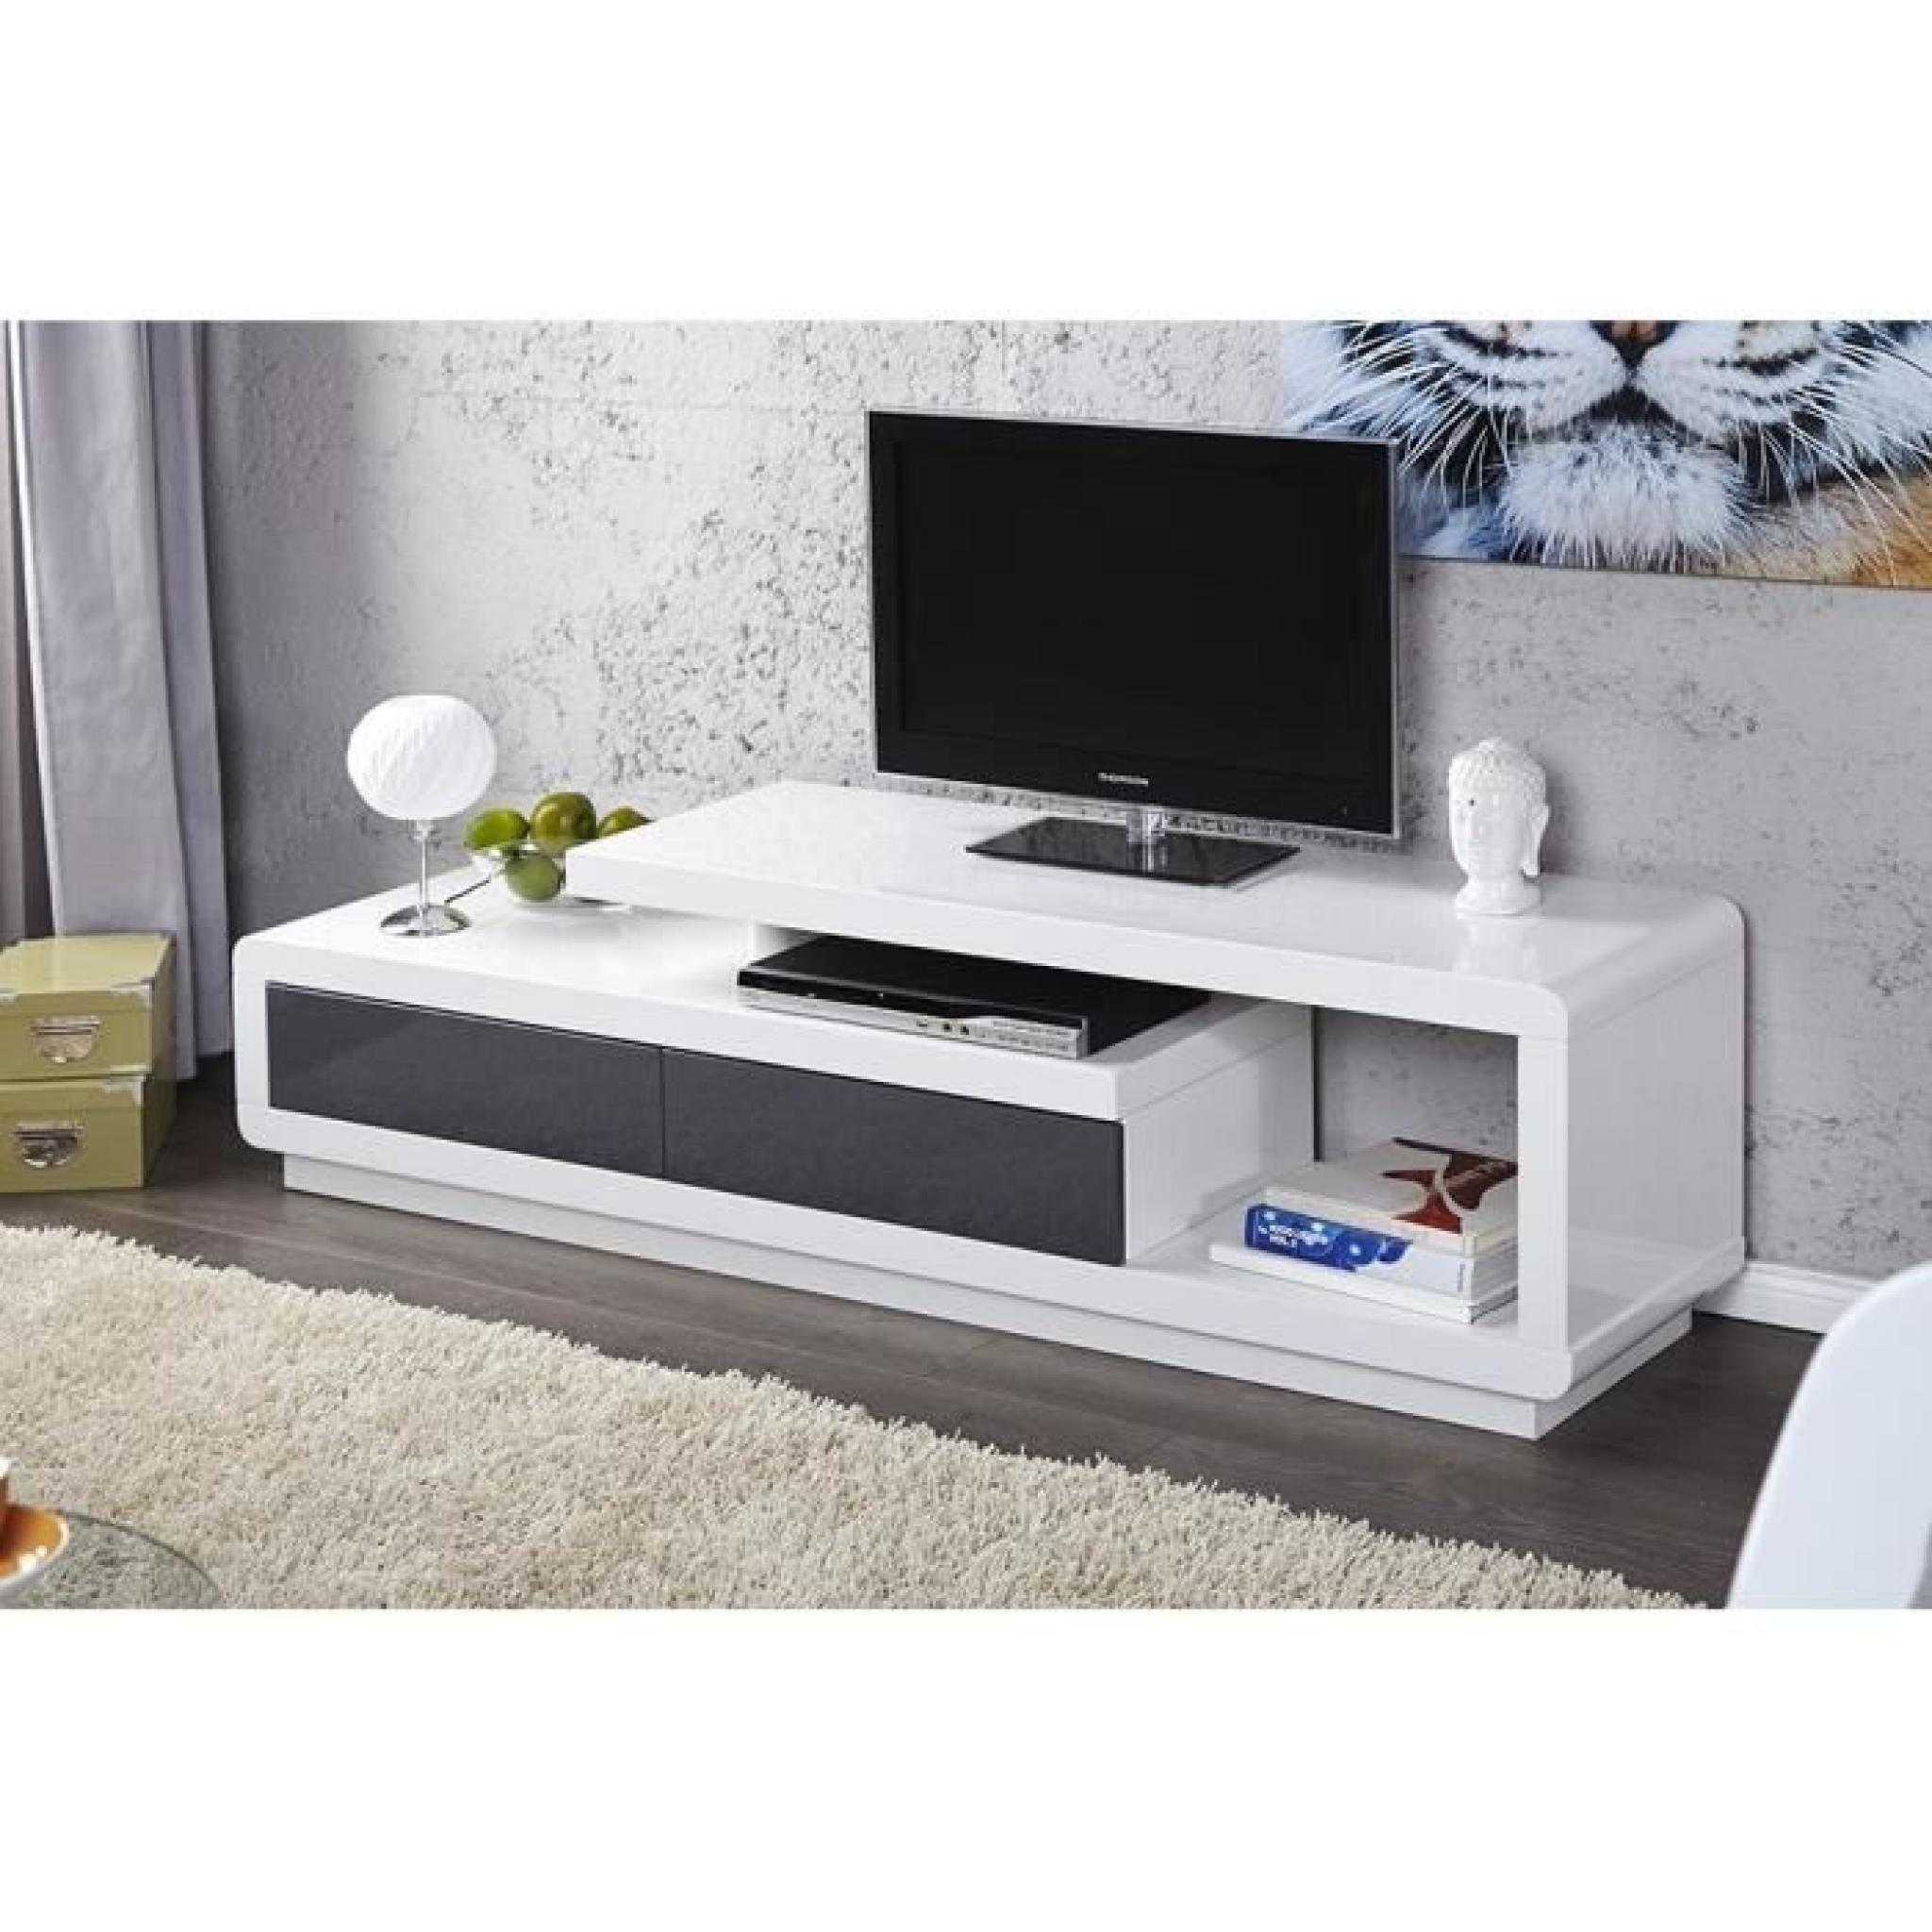 meuble tv gris et blanc id es de d coration int rieure french decor. Black Bedroom Furniture Sets. Home Design Ideas